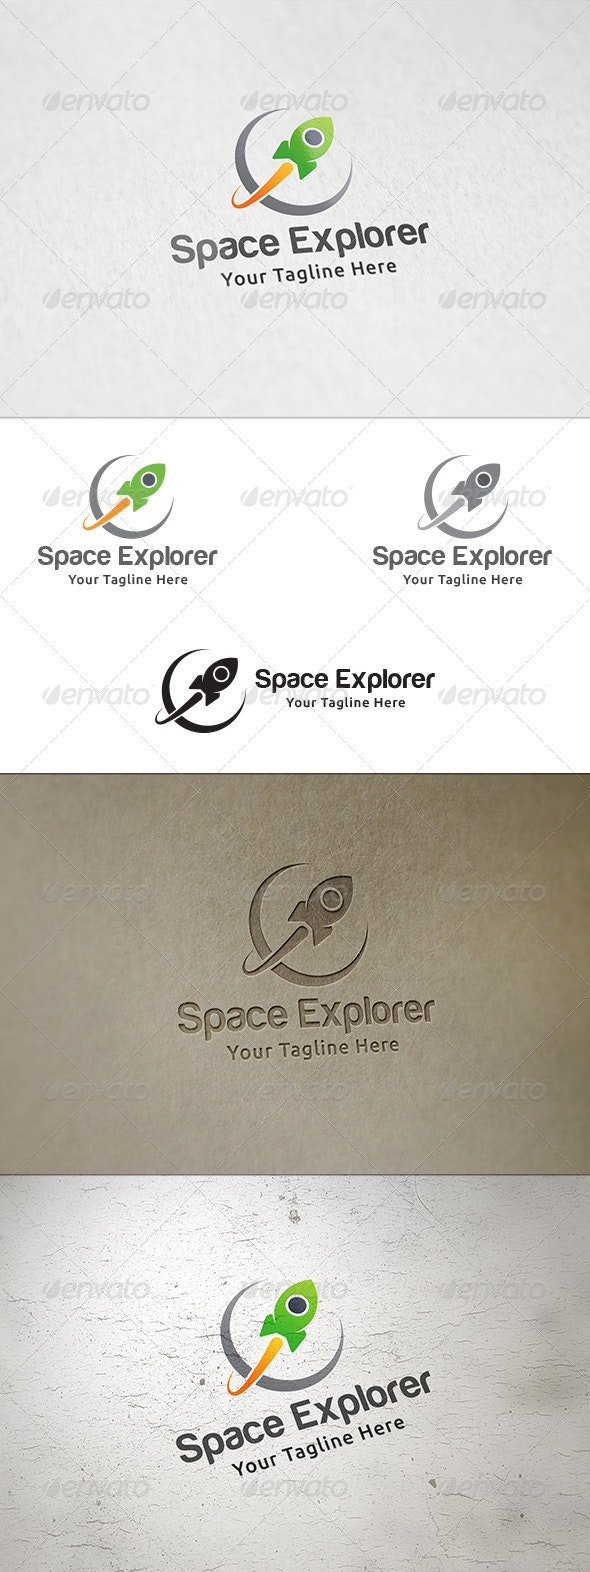 Space Explorer - Logo Template - Objects Logo Templates